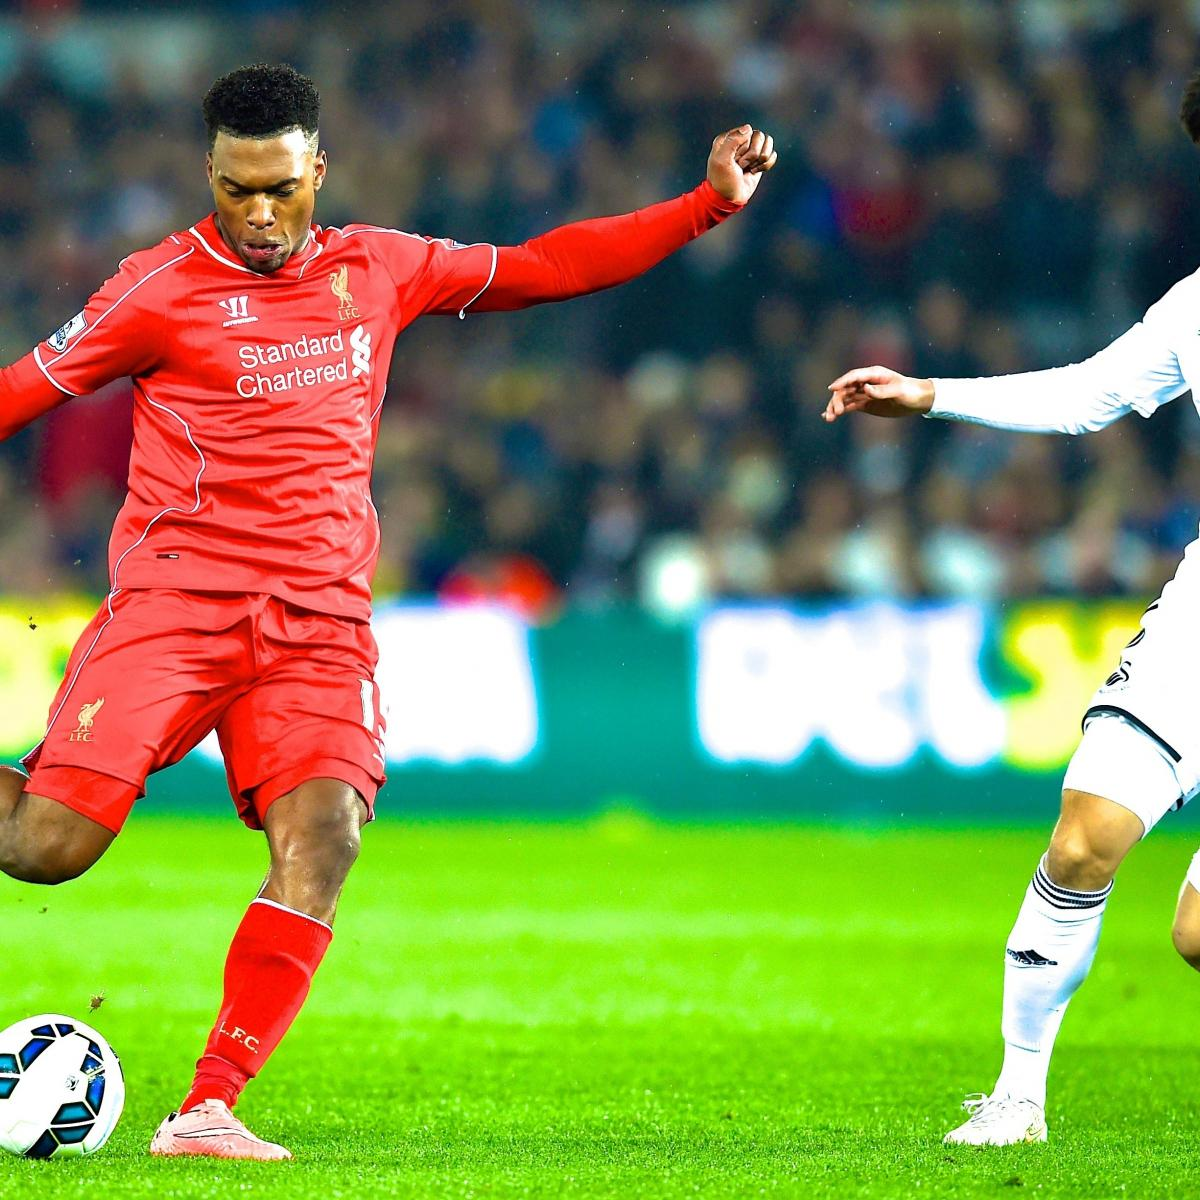 Swansea City Vs. Liverpool: Live Score, Highlights From